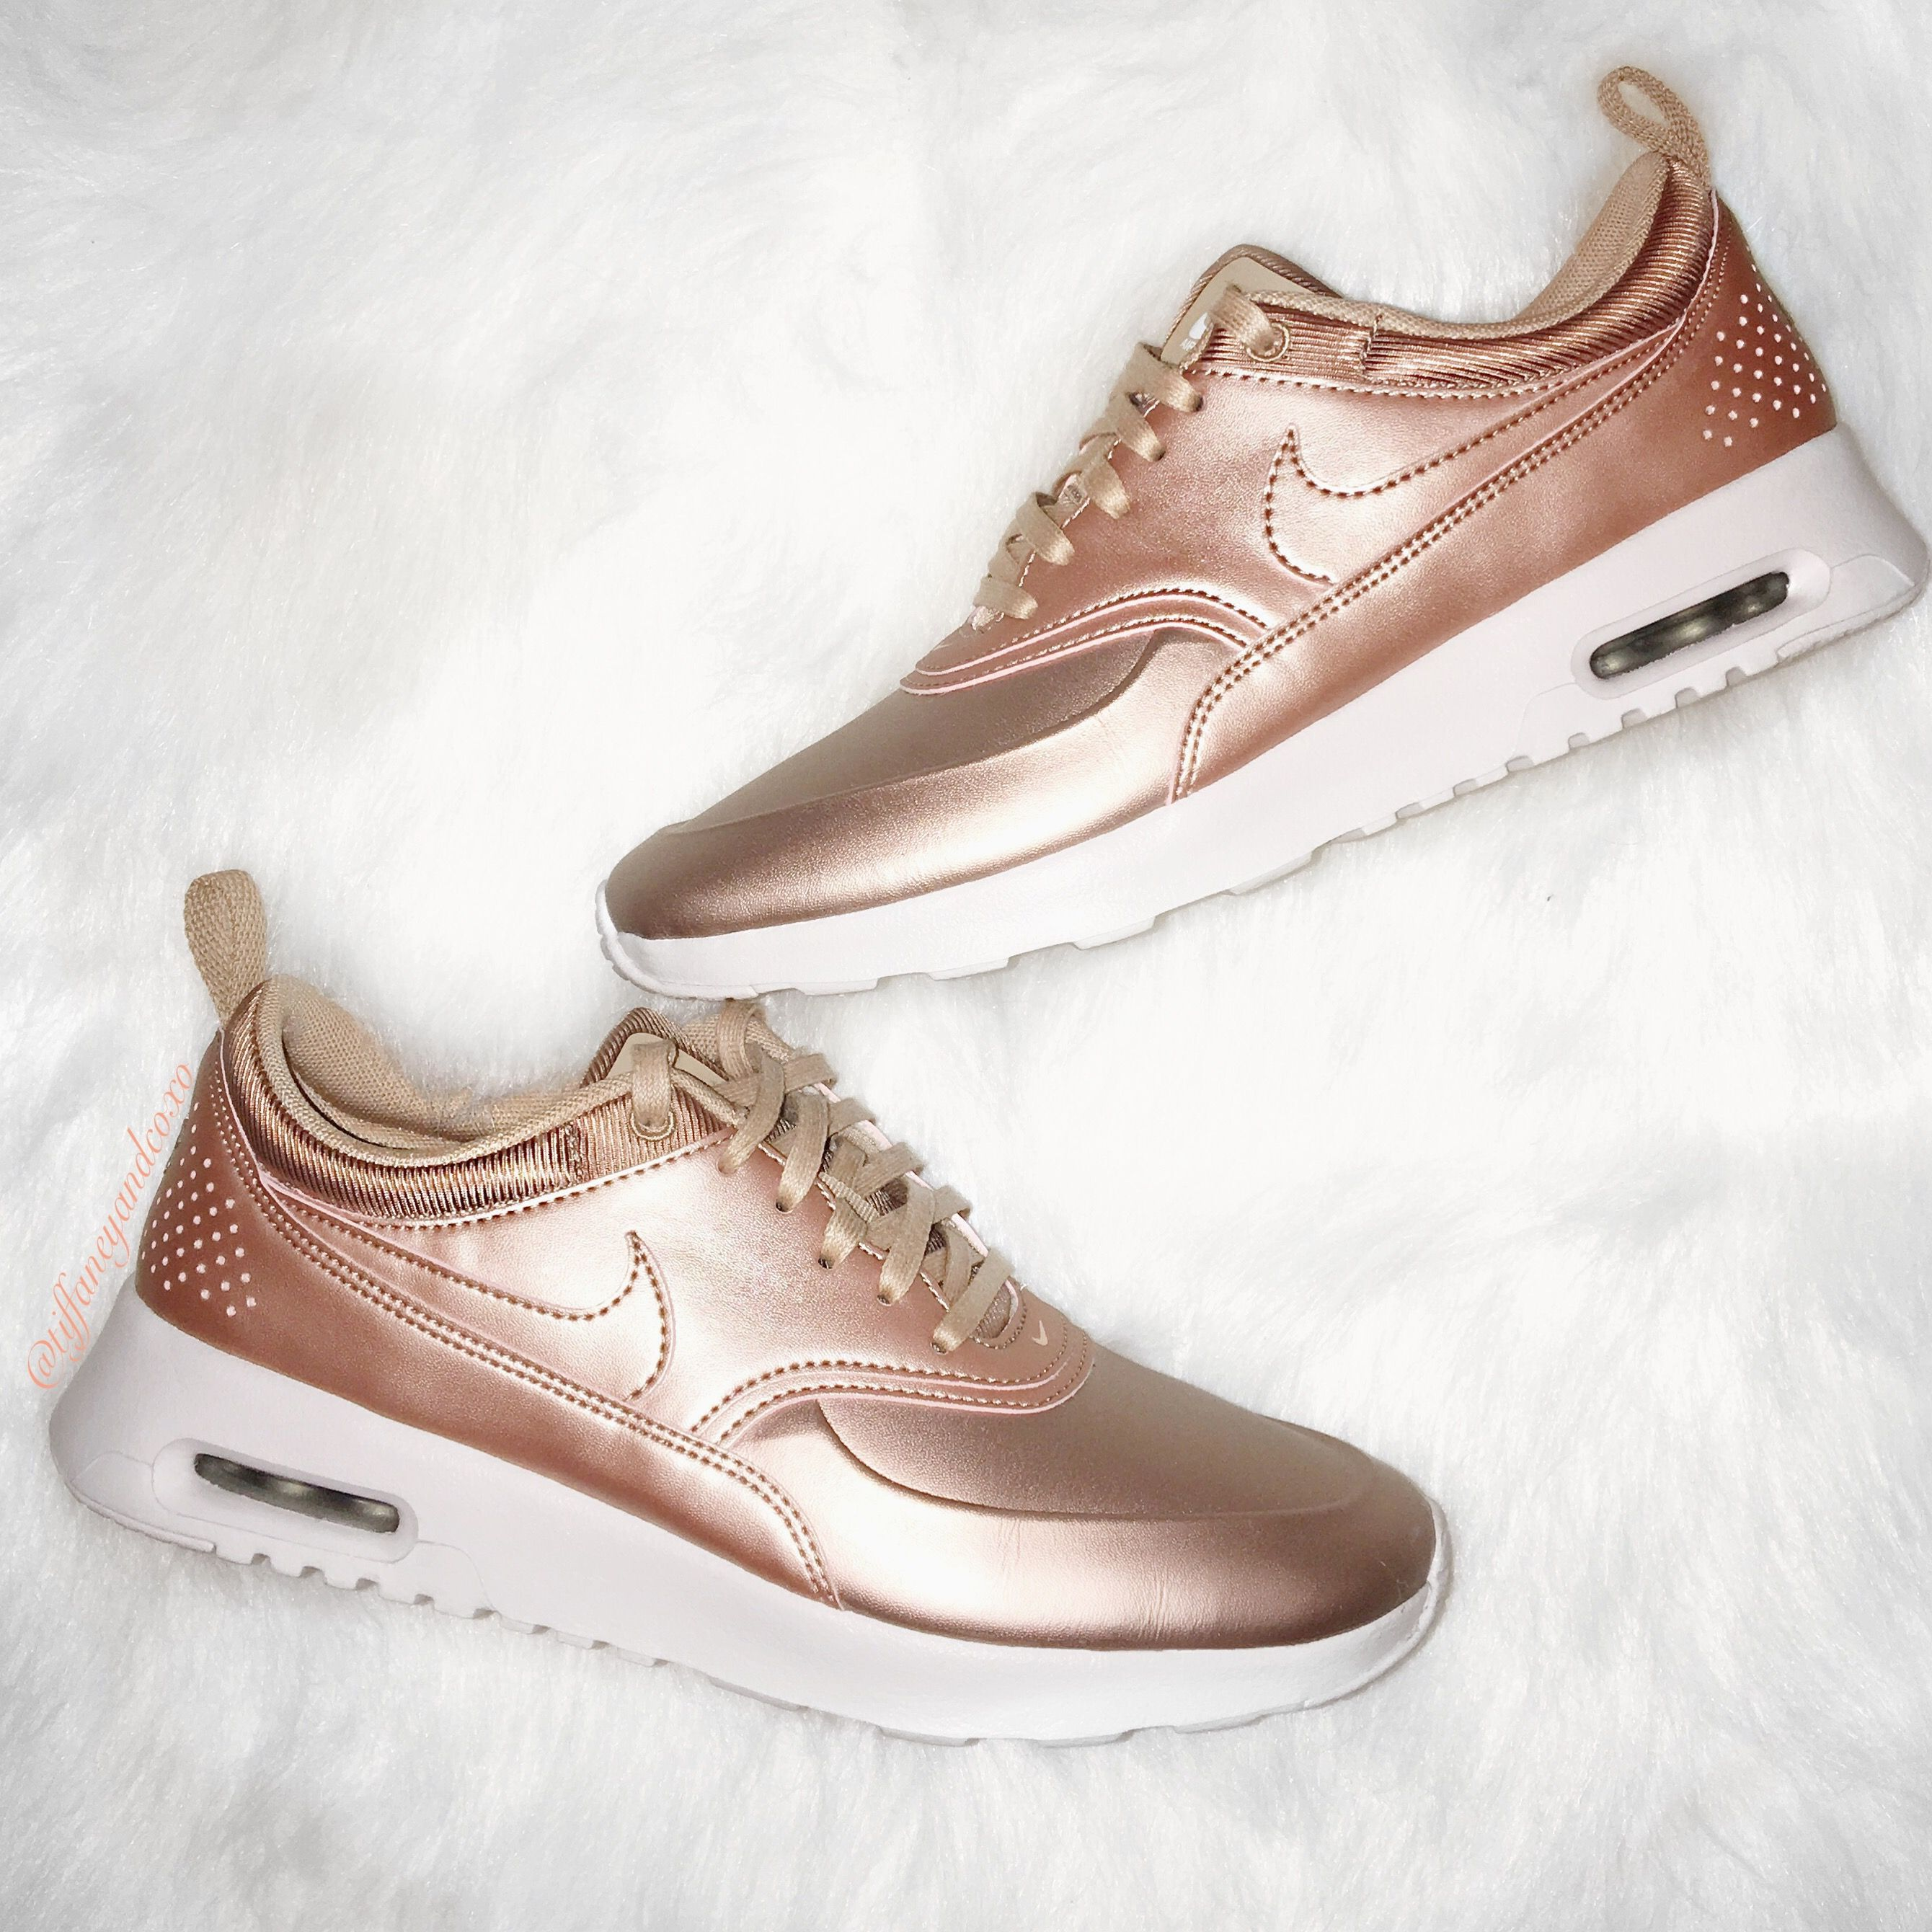 Nike Air Max Thea SE in Red Bronze